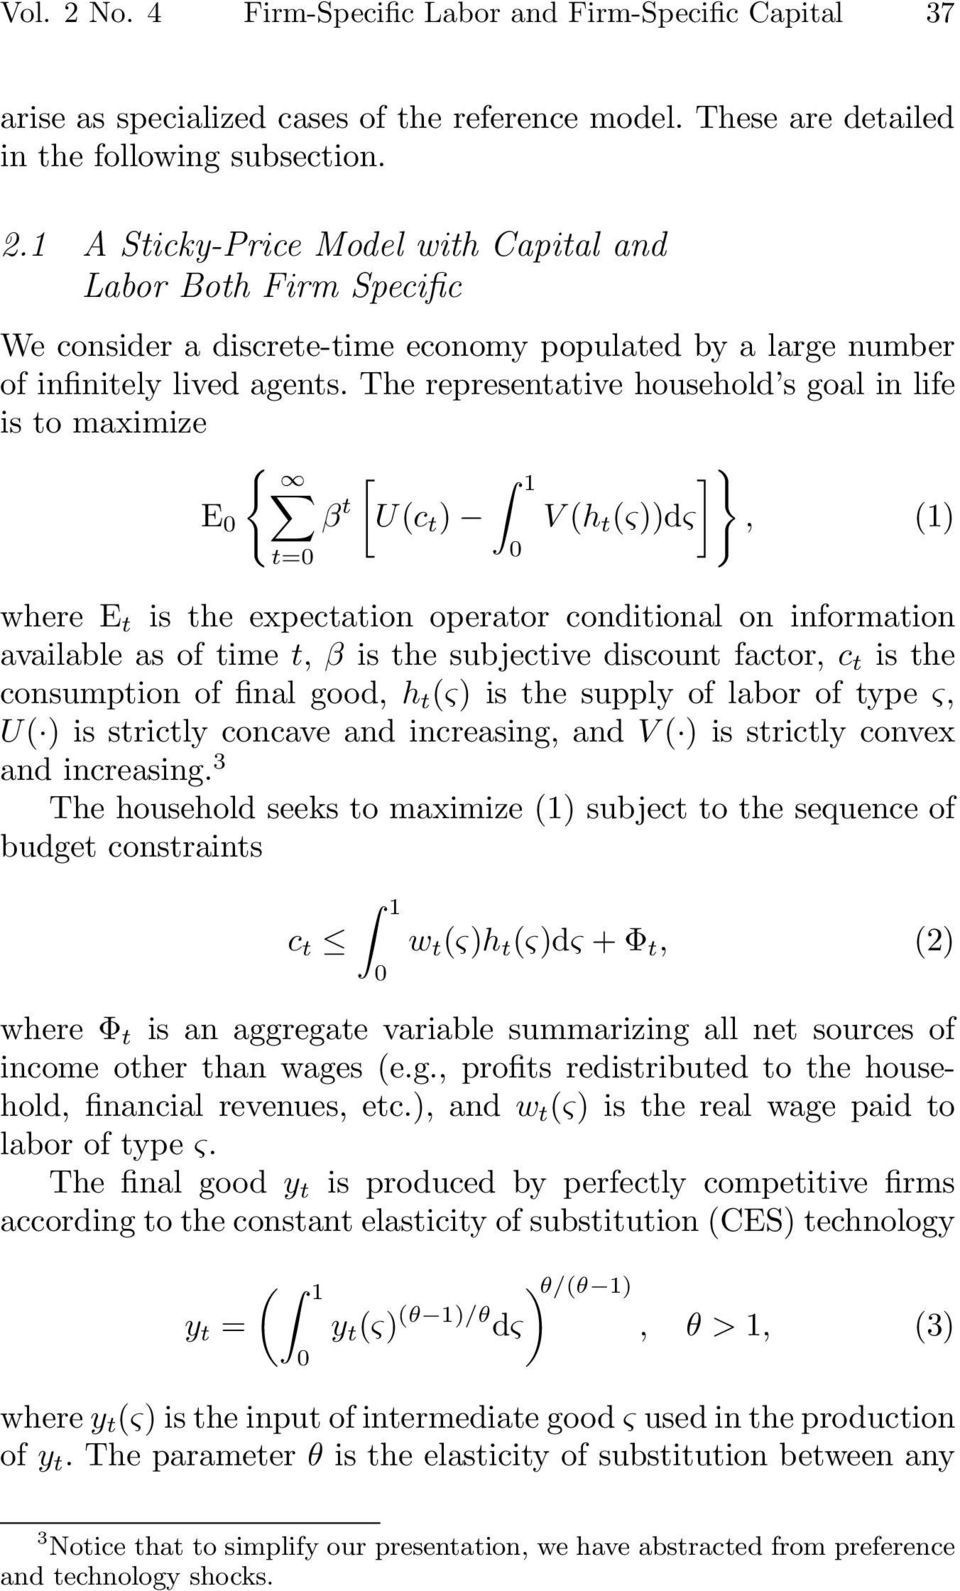 the subjective discount factor, c t is the consumption of final good, h t (ς) is the supply of labor of type ς, U( ) is strictly concave and increasing, and V ( ) is strictly convex and increasing.